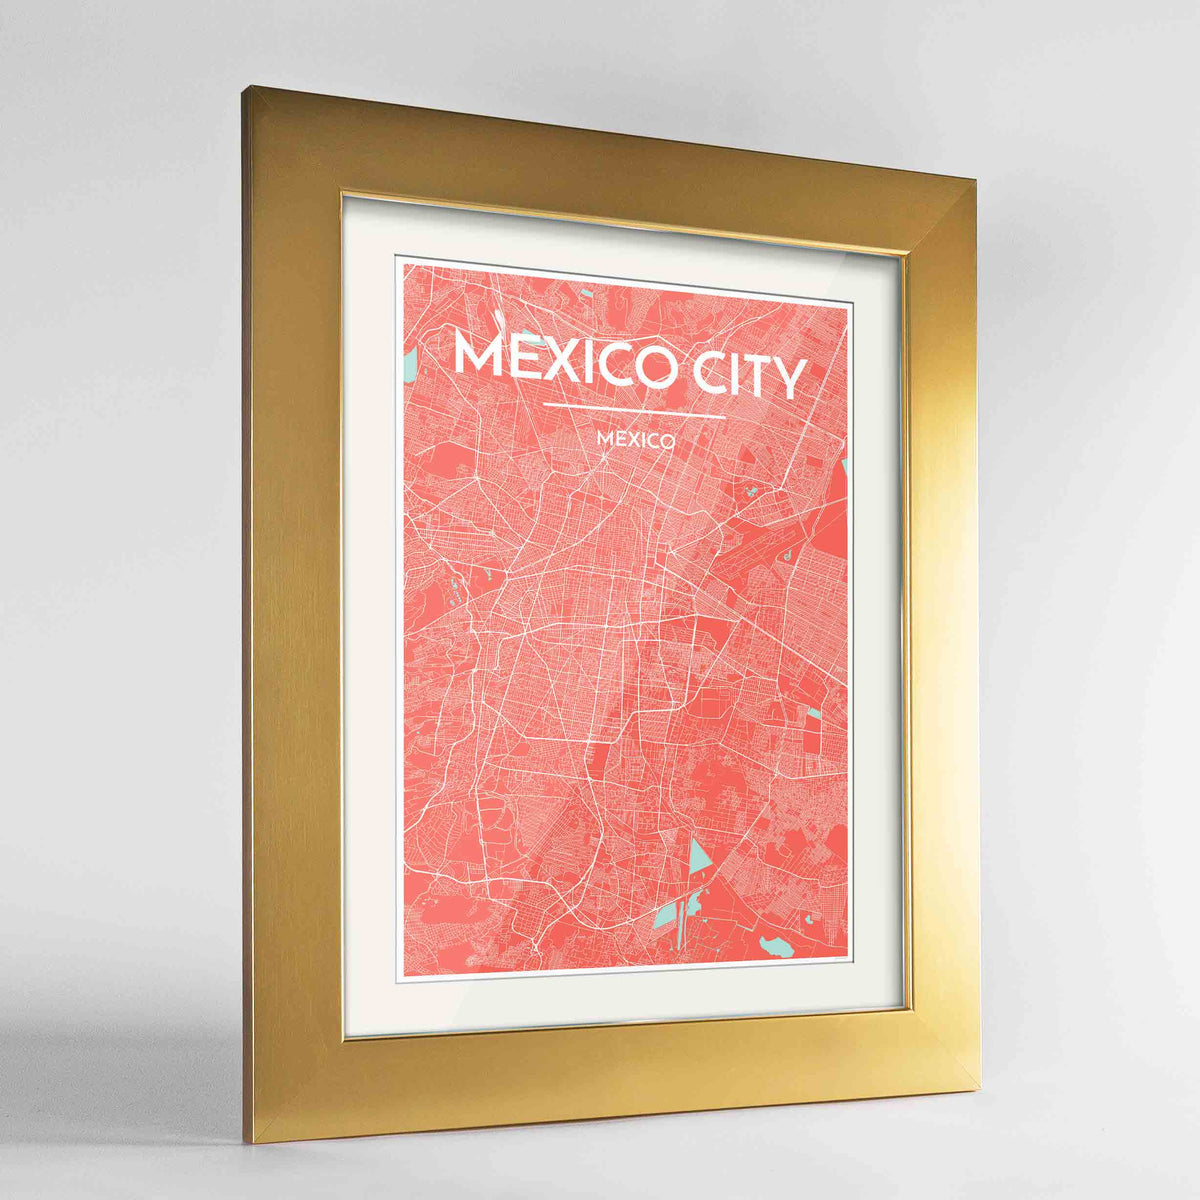 "Framed Mexico City Map Art Print 24x36"" Gold frame Point Two Design Group"